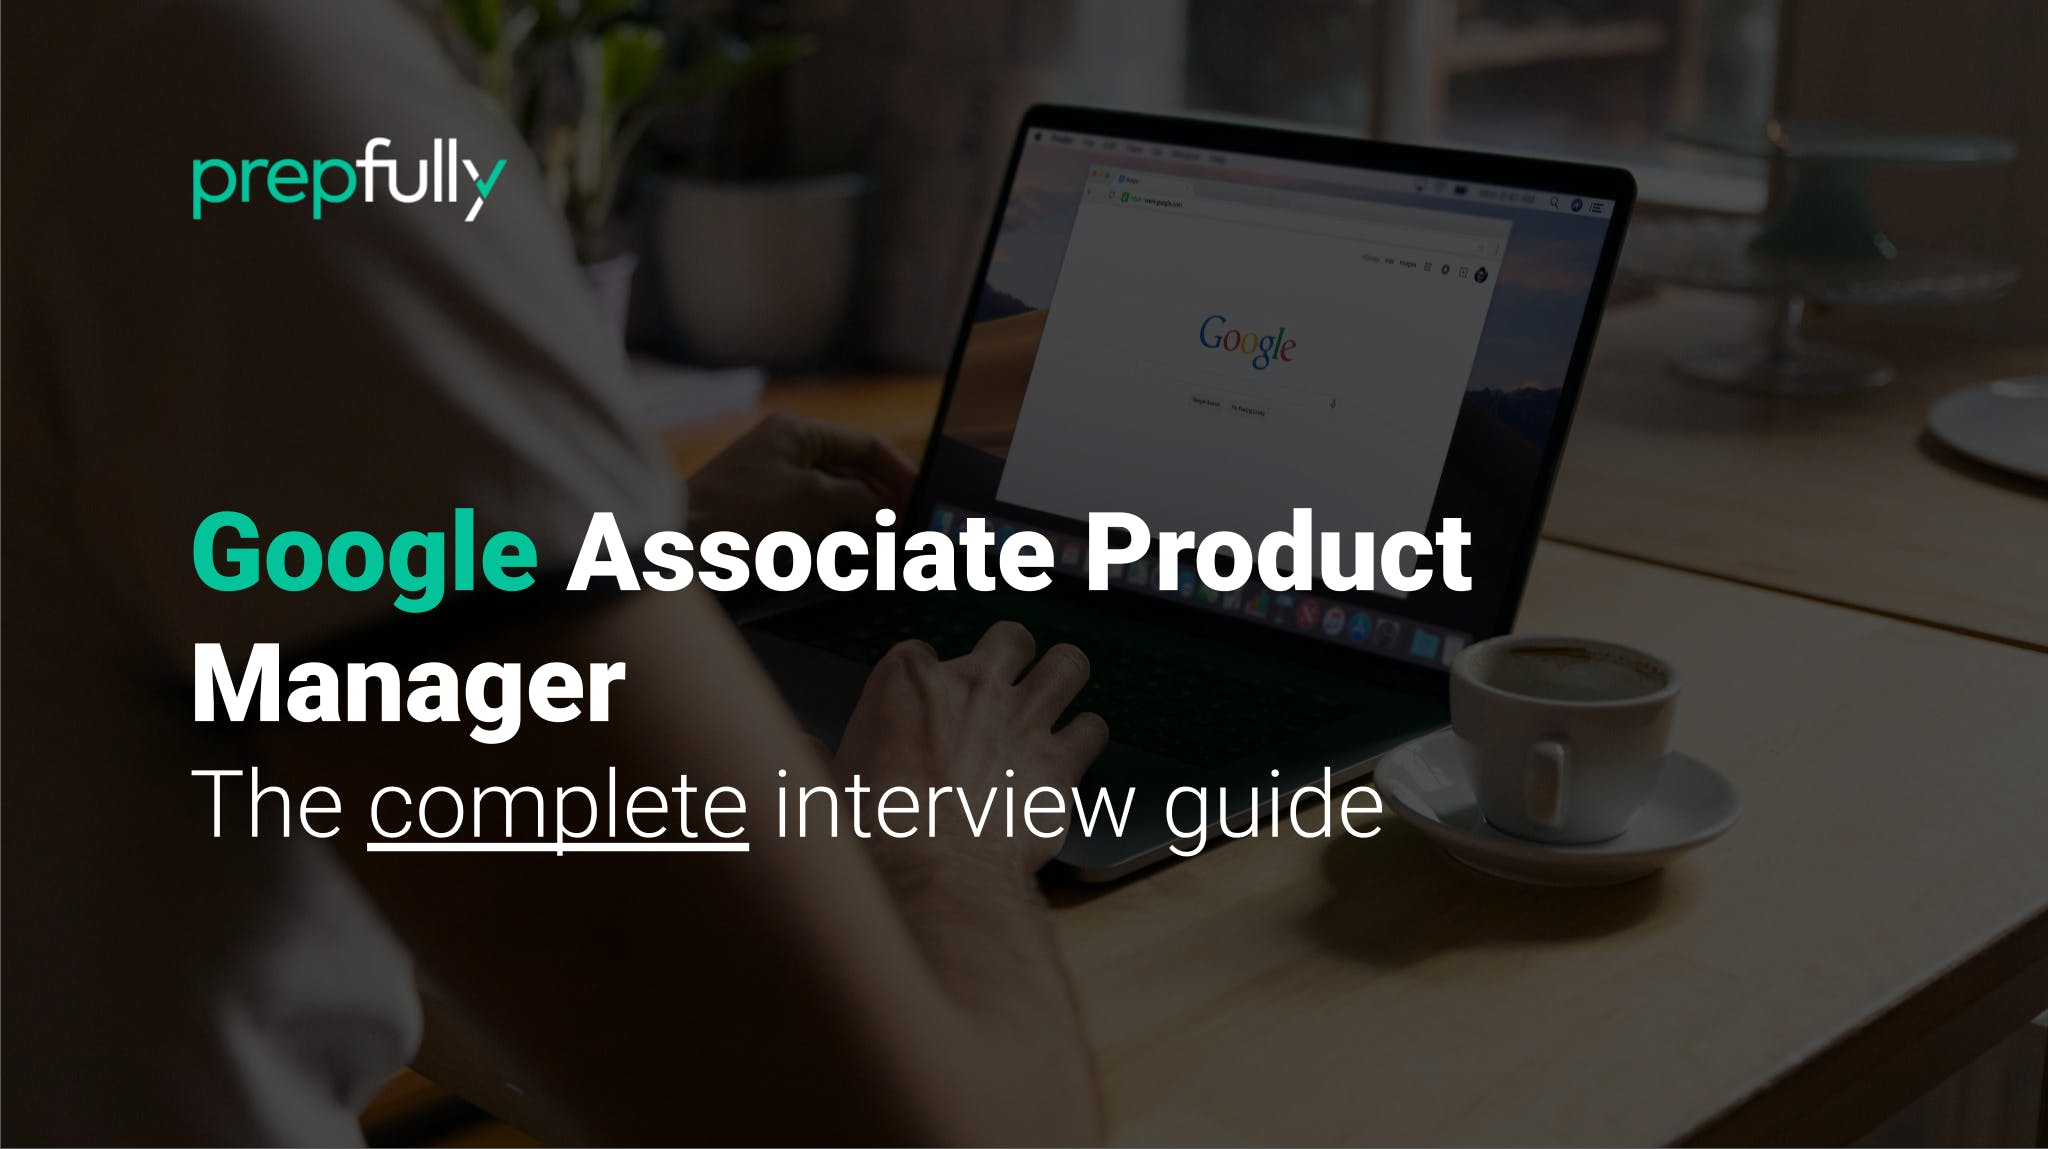 Interview guide for Google Associate Product Manager